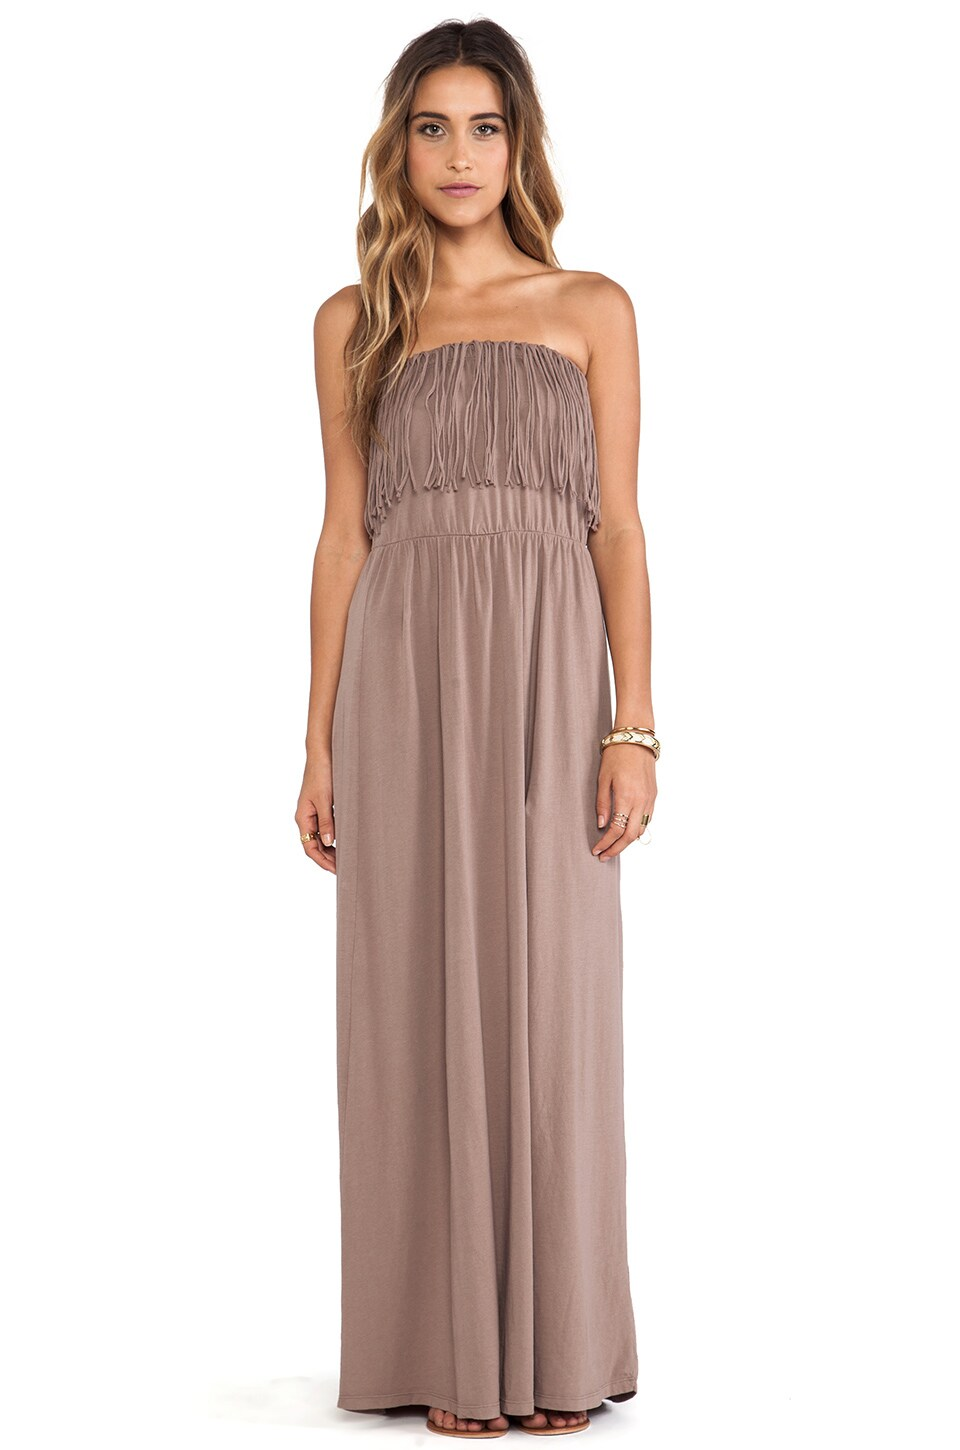 Bobi Light Weight Jersey Strapless Dress in Java